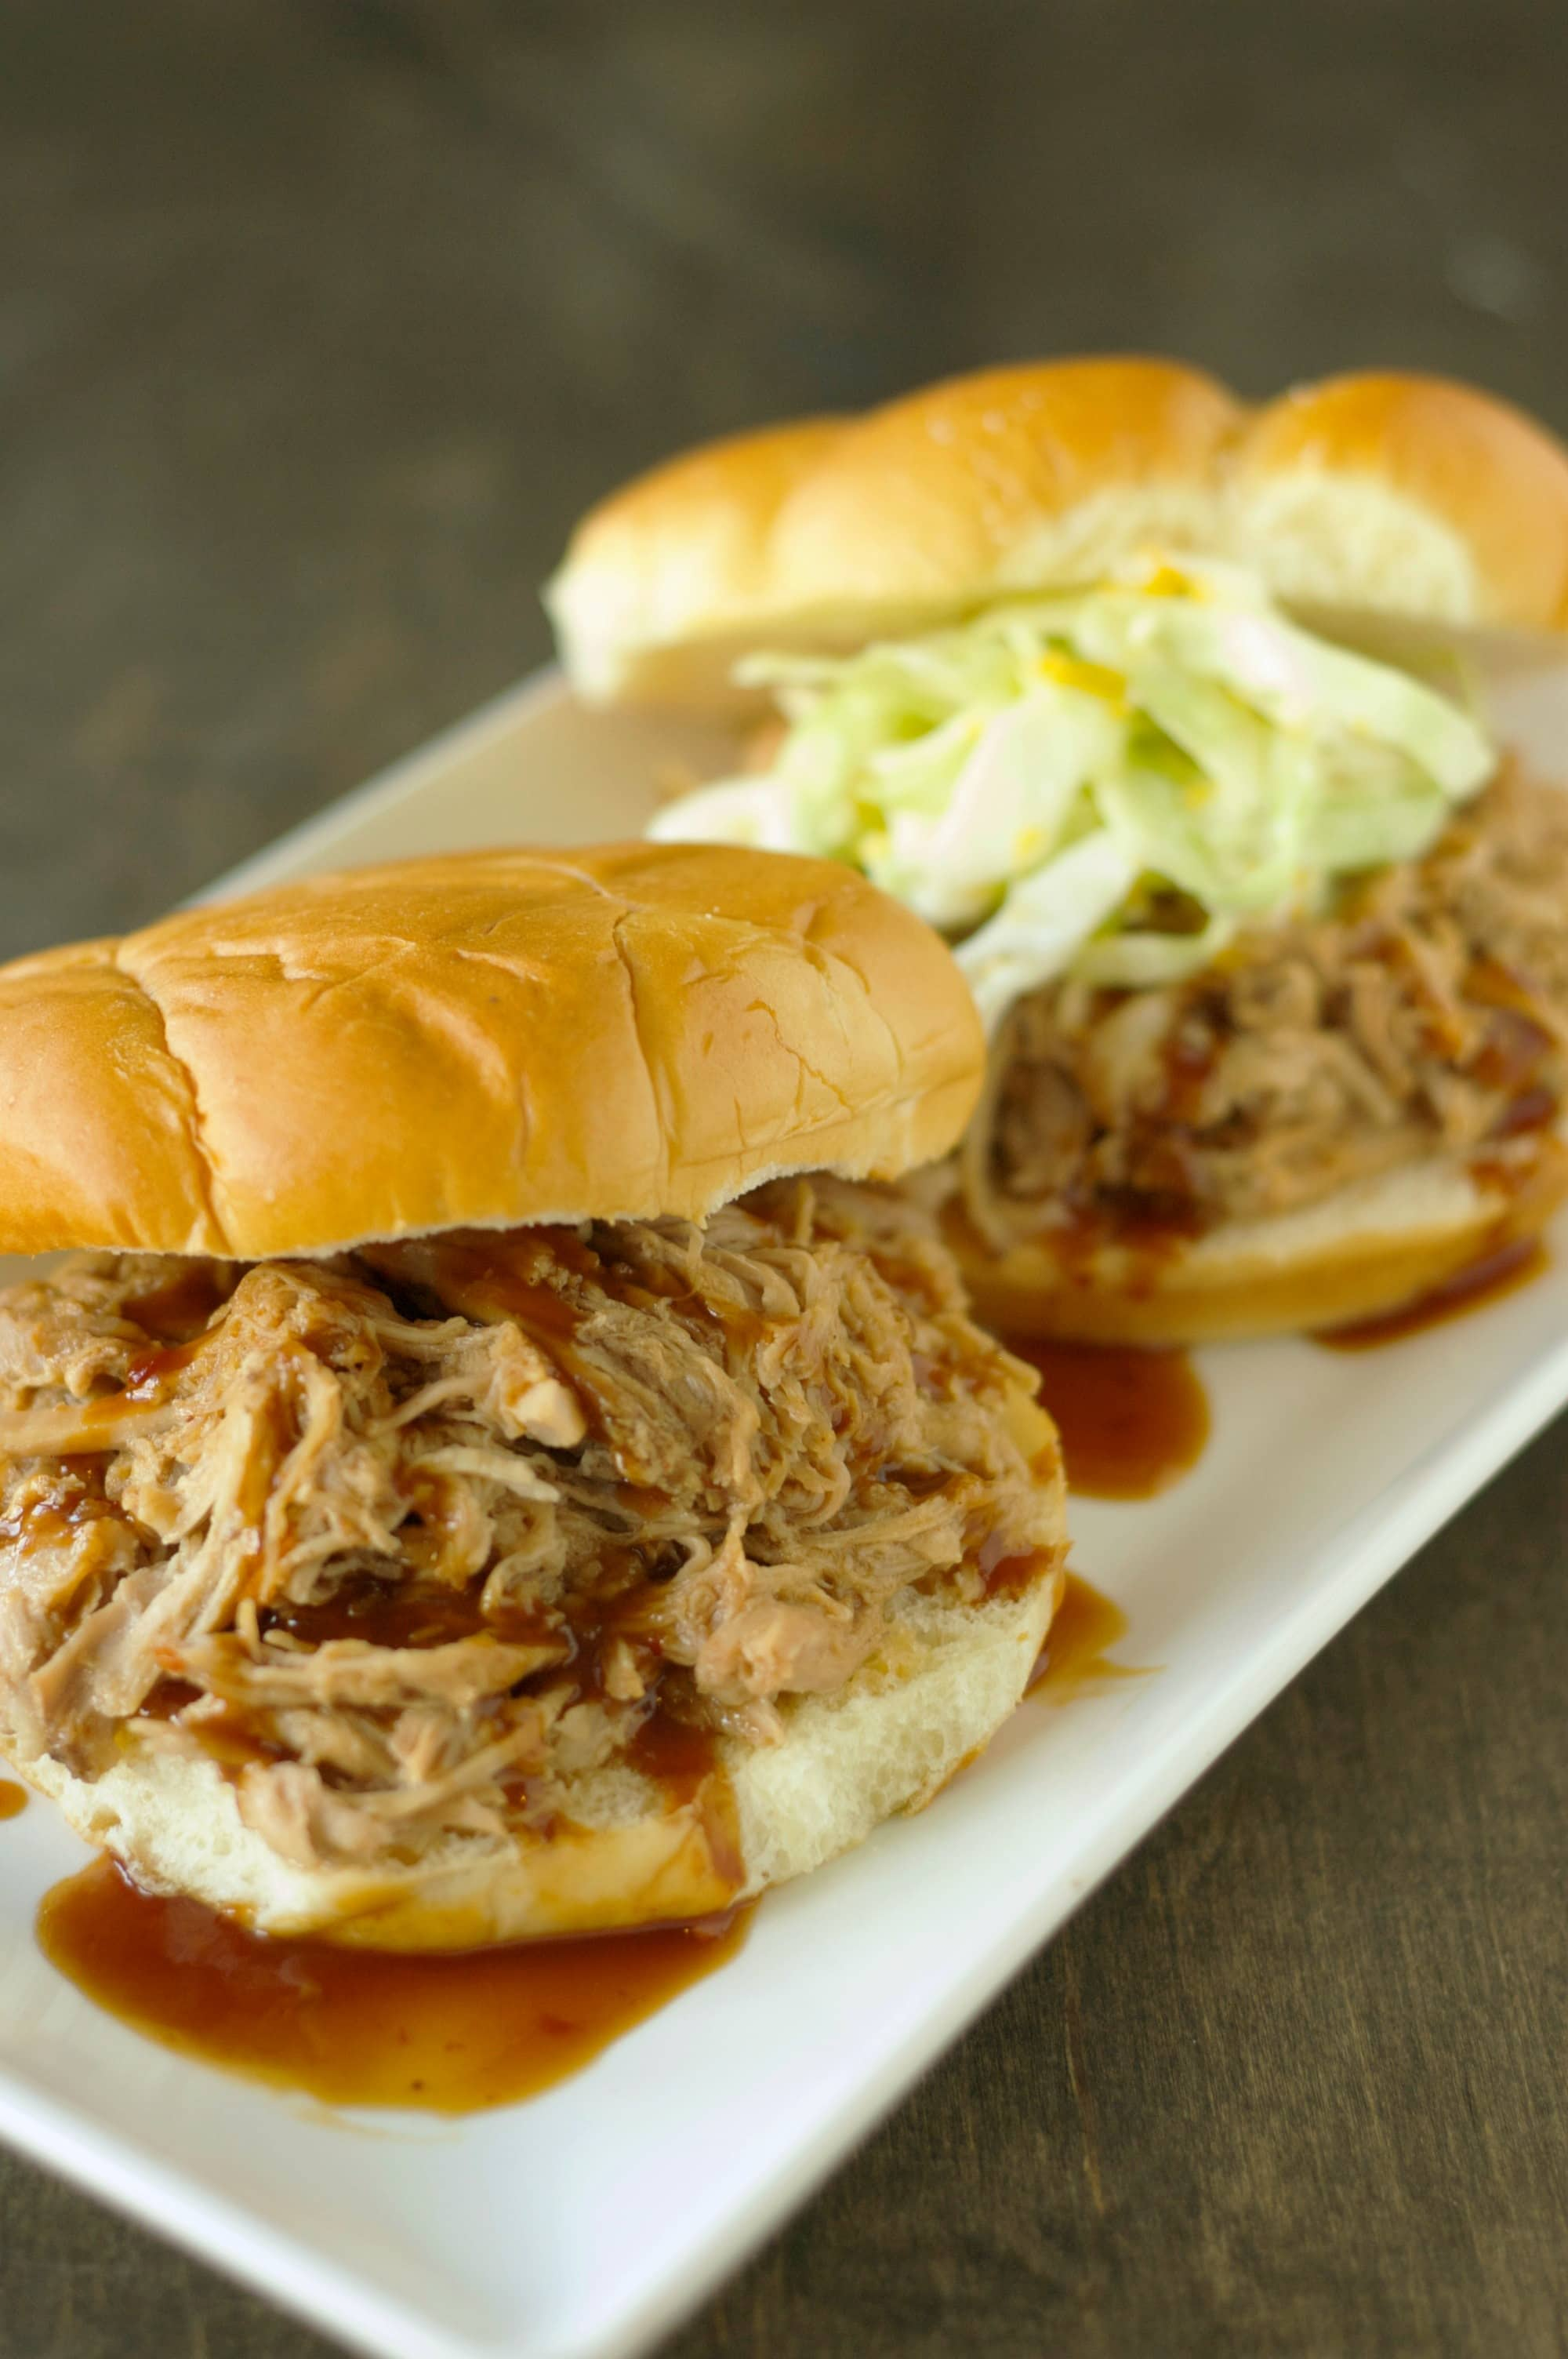 Hawaiian Bbq Pulled Pork Sandwich With Grilled Pineapple